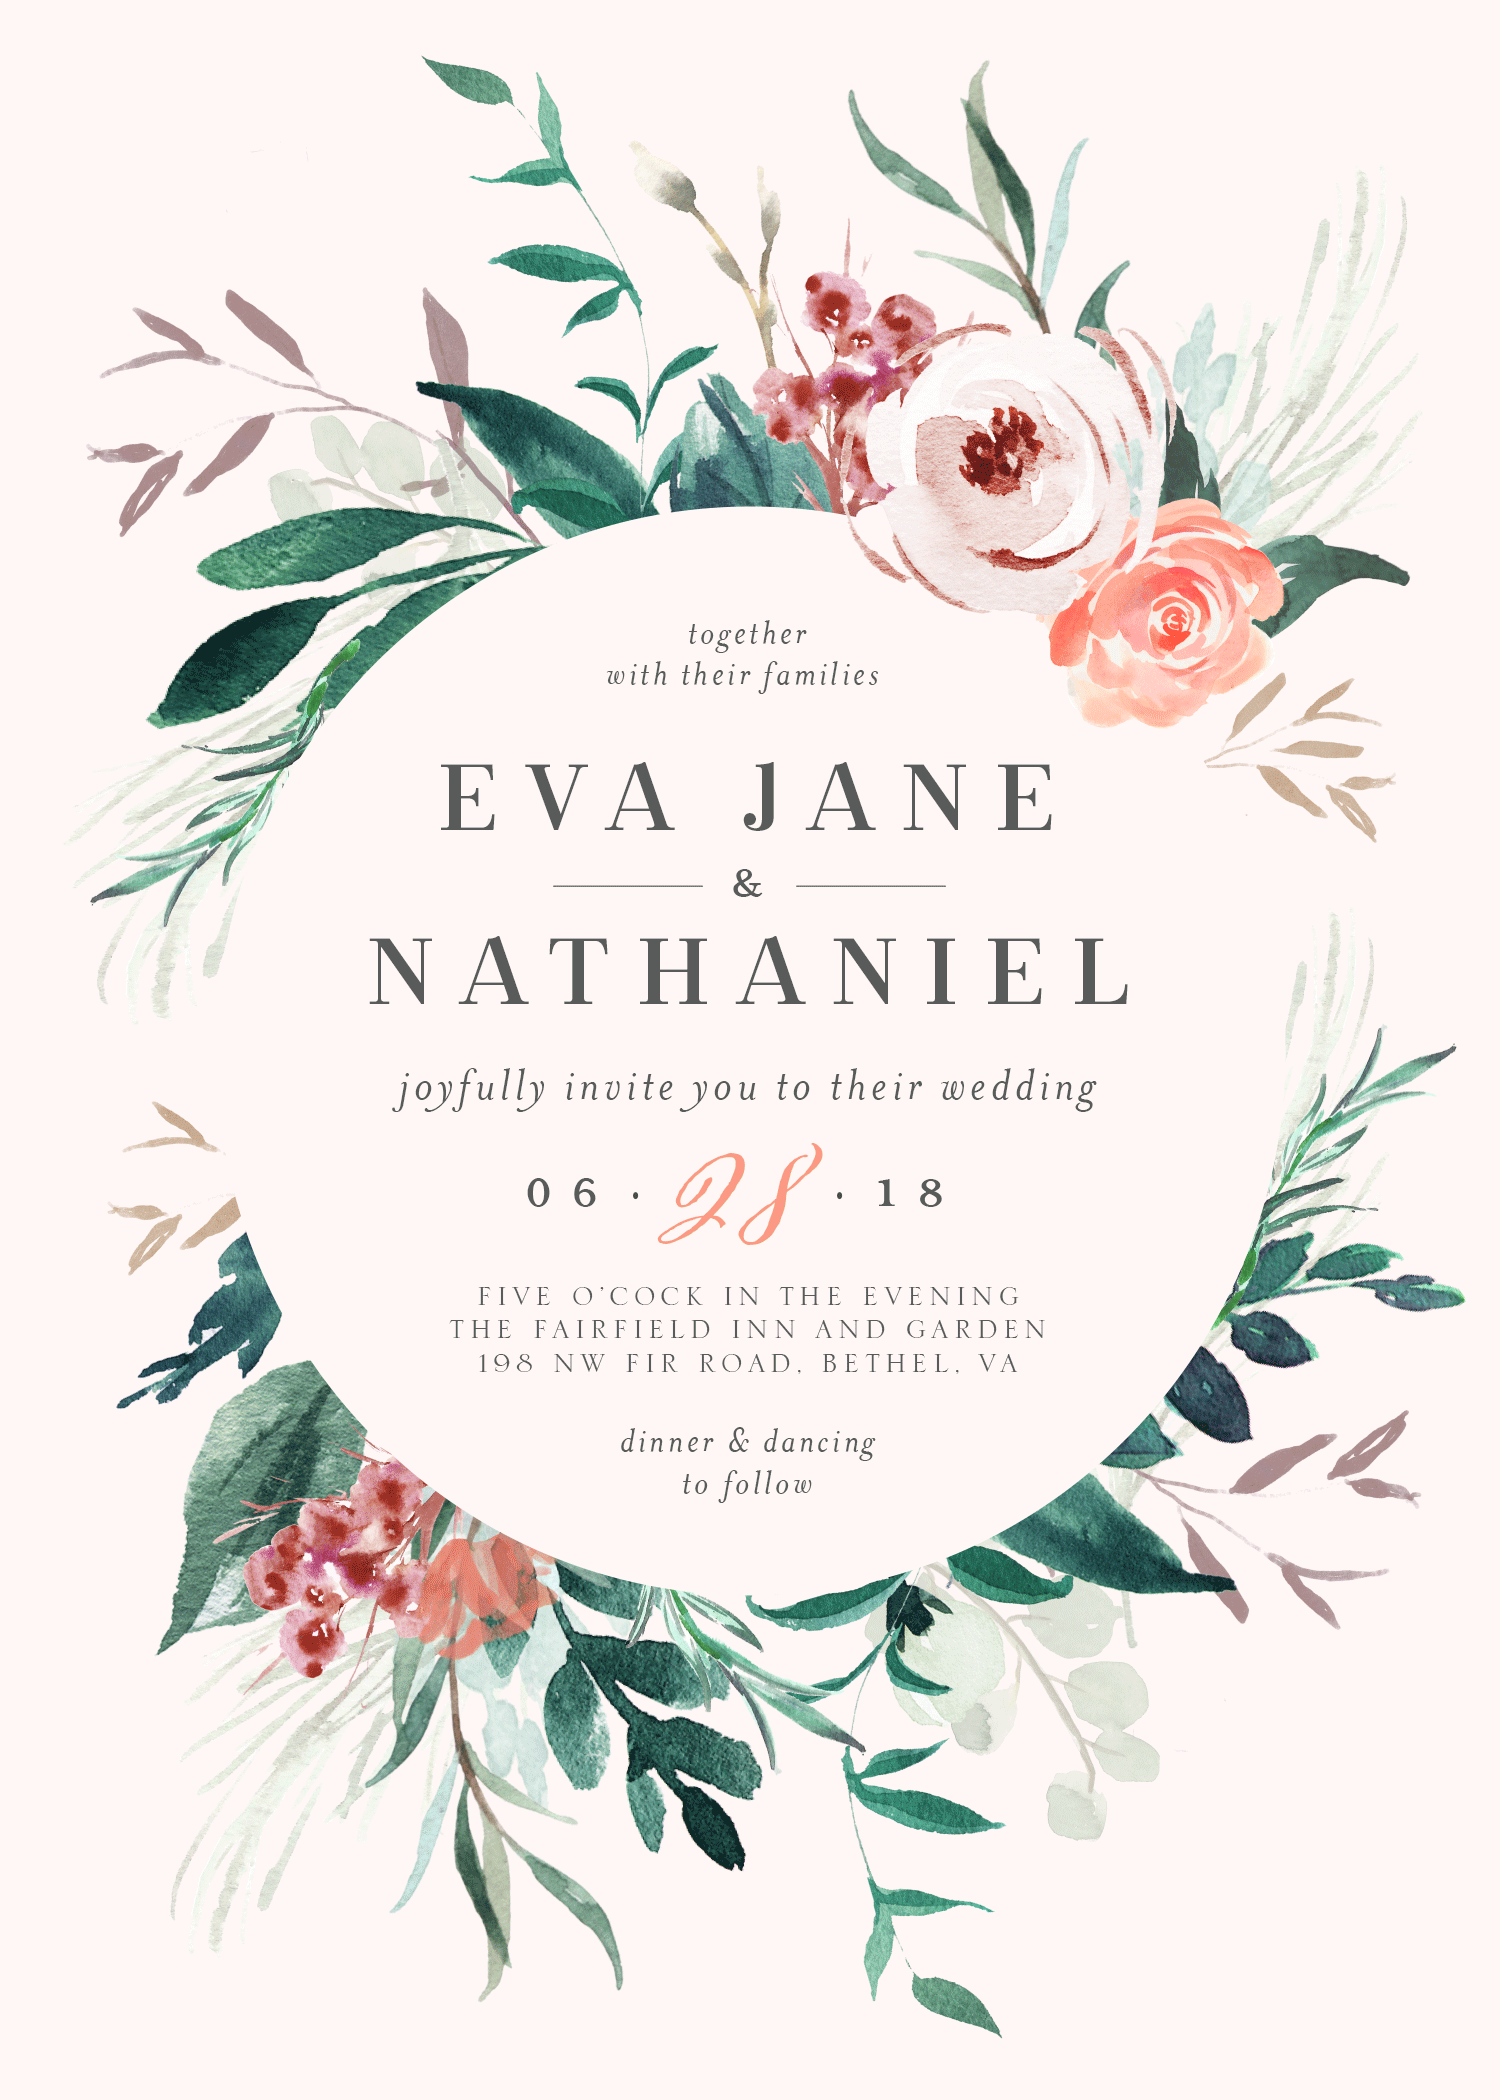 Customizable watercolor wedding invitation featuring your names and wedding details in a floral wreath.